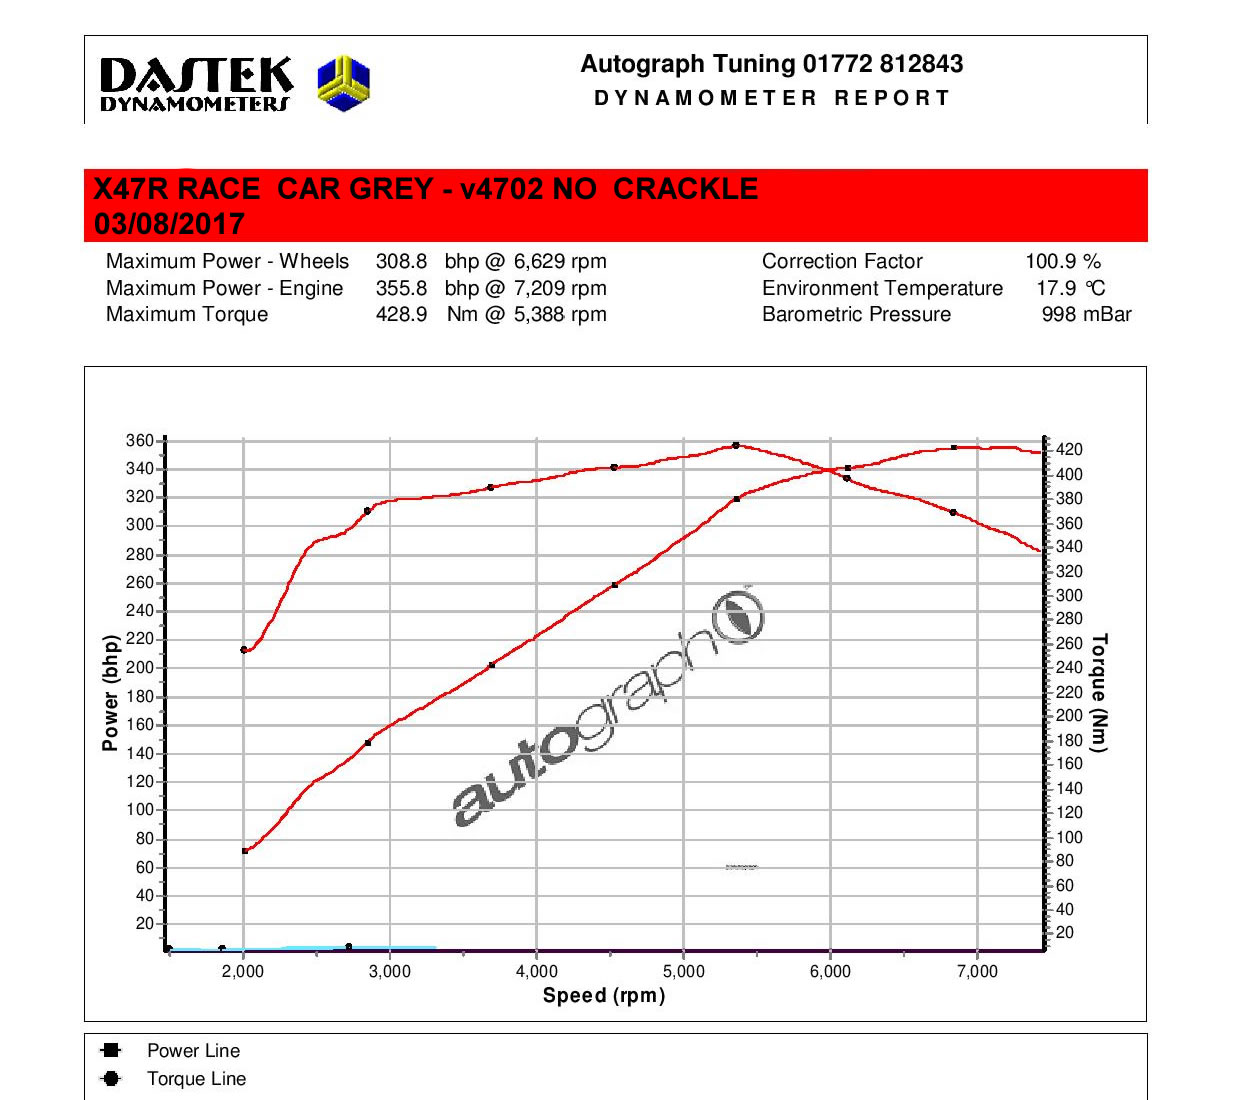 DAN RACE CAR  X47R GRAPH ON v4702